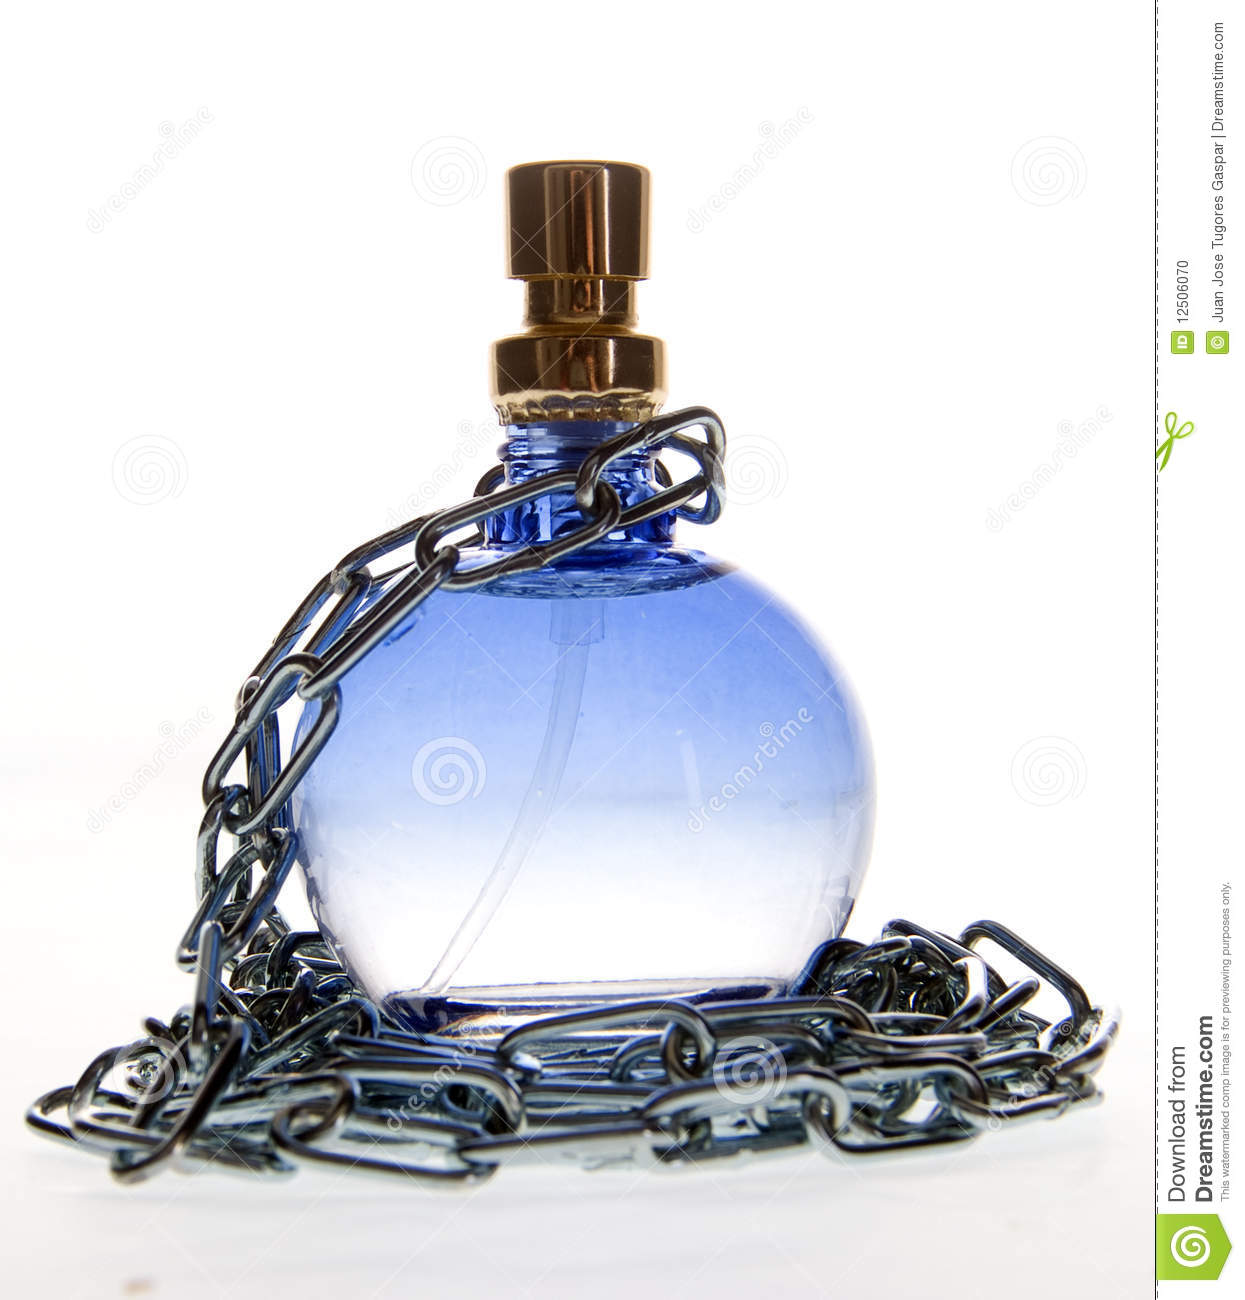 Fragrances Perfume Bottle And Perfume Bottles: Perfume Bottle And Chain Stock Photo. Image Of Cologne